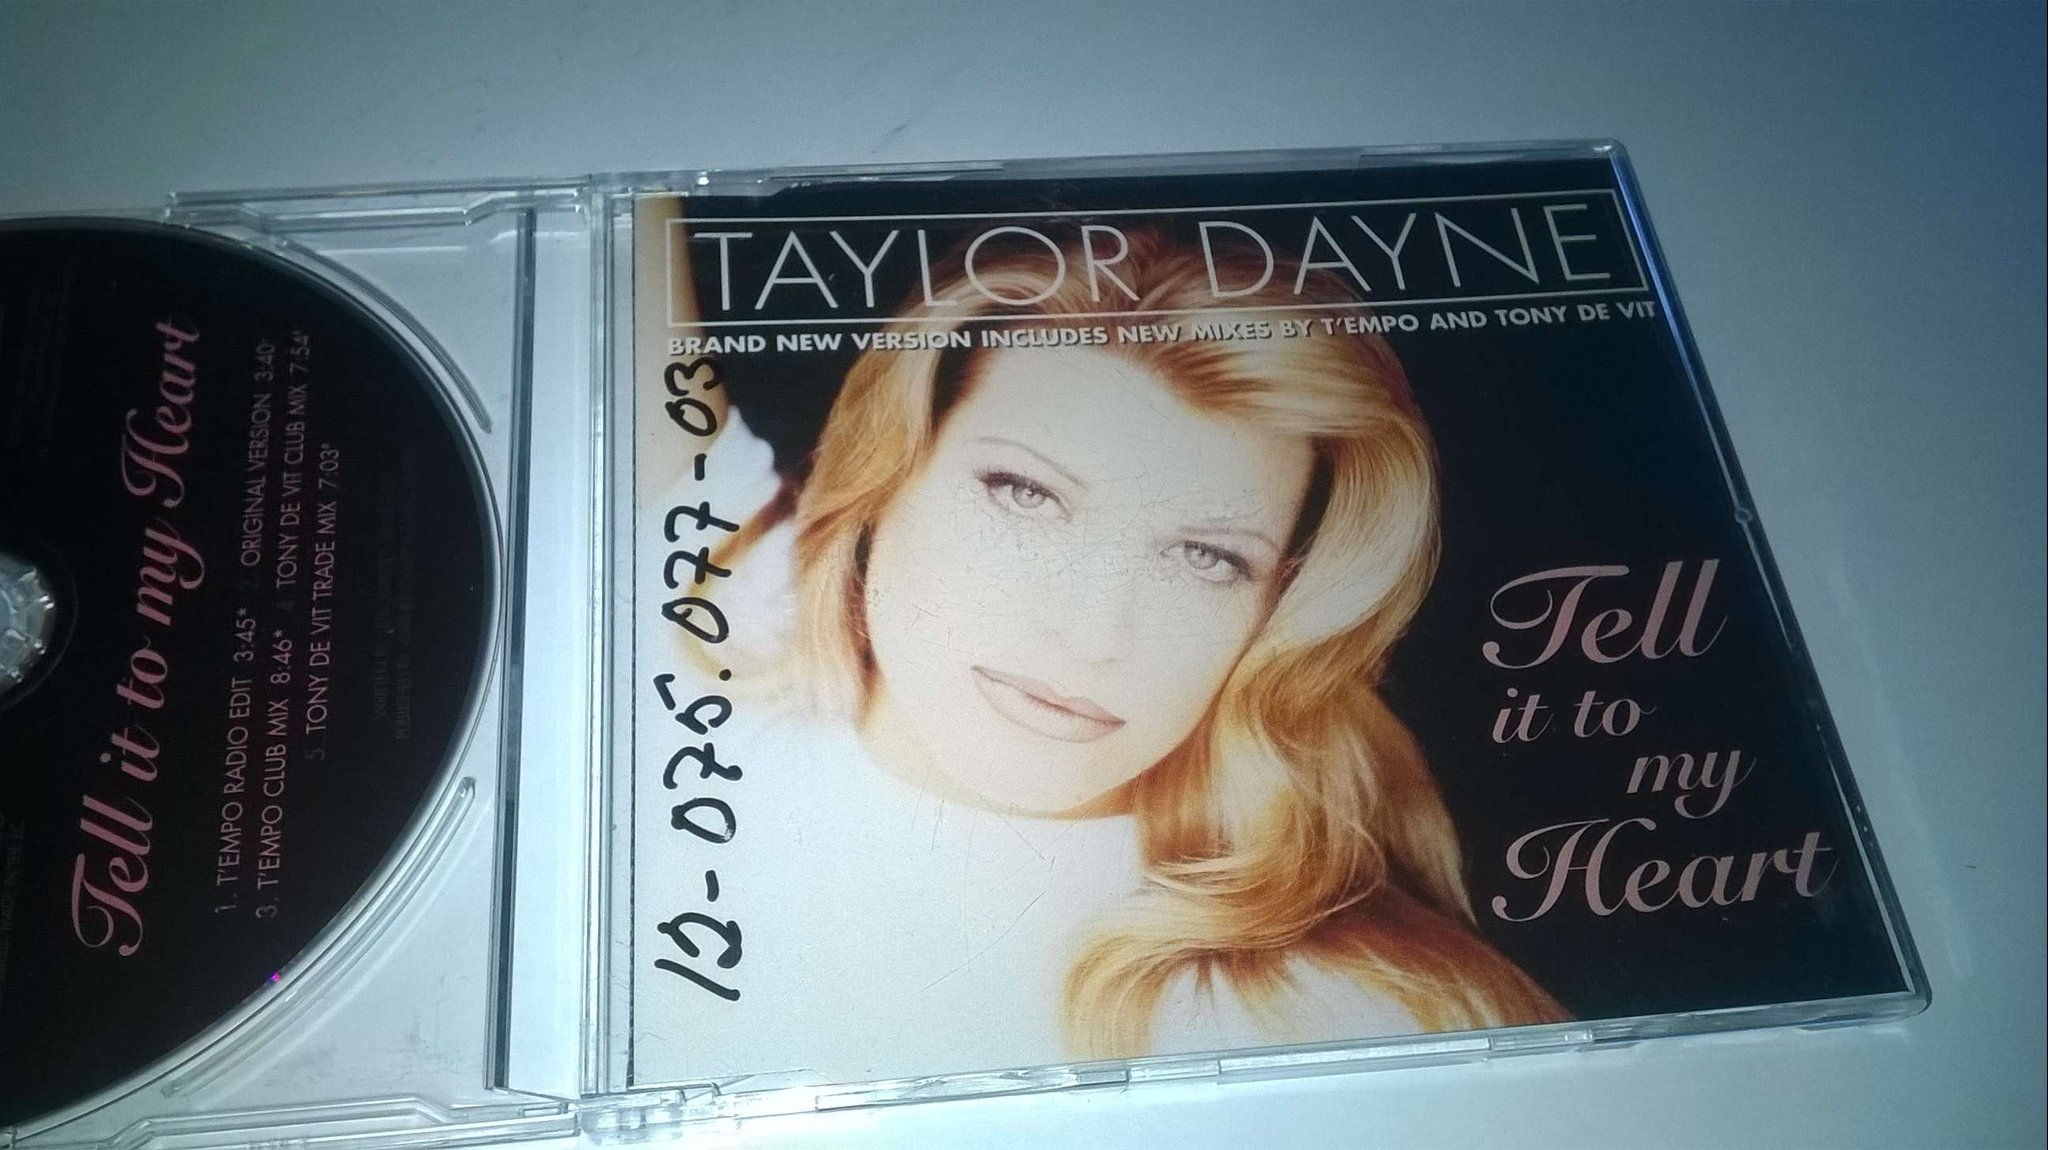 Taylor Dayne - Tell It To My Heart, CD, Single